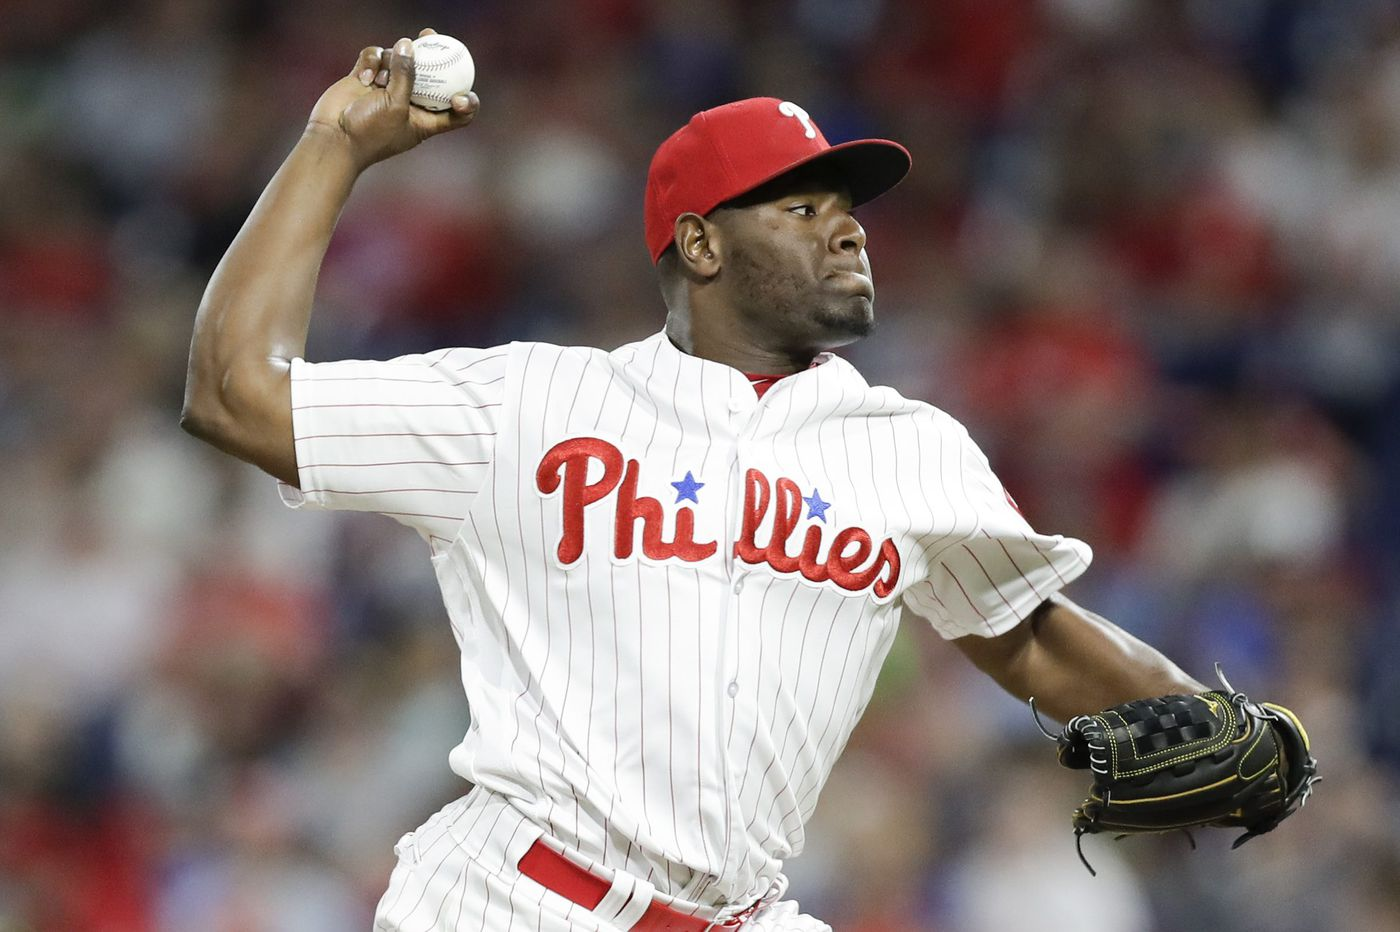 Hector Neris is trying to regain his shutdown power in Lehigh Valley